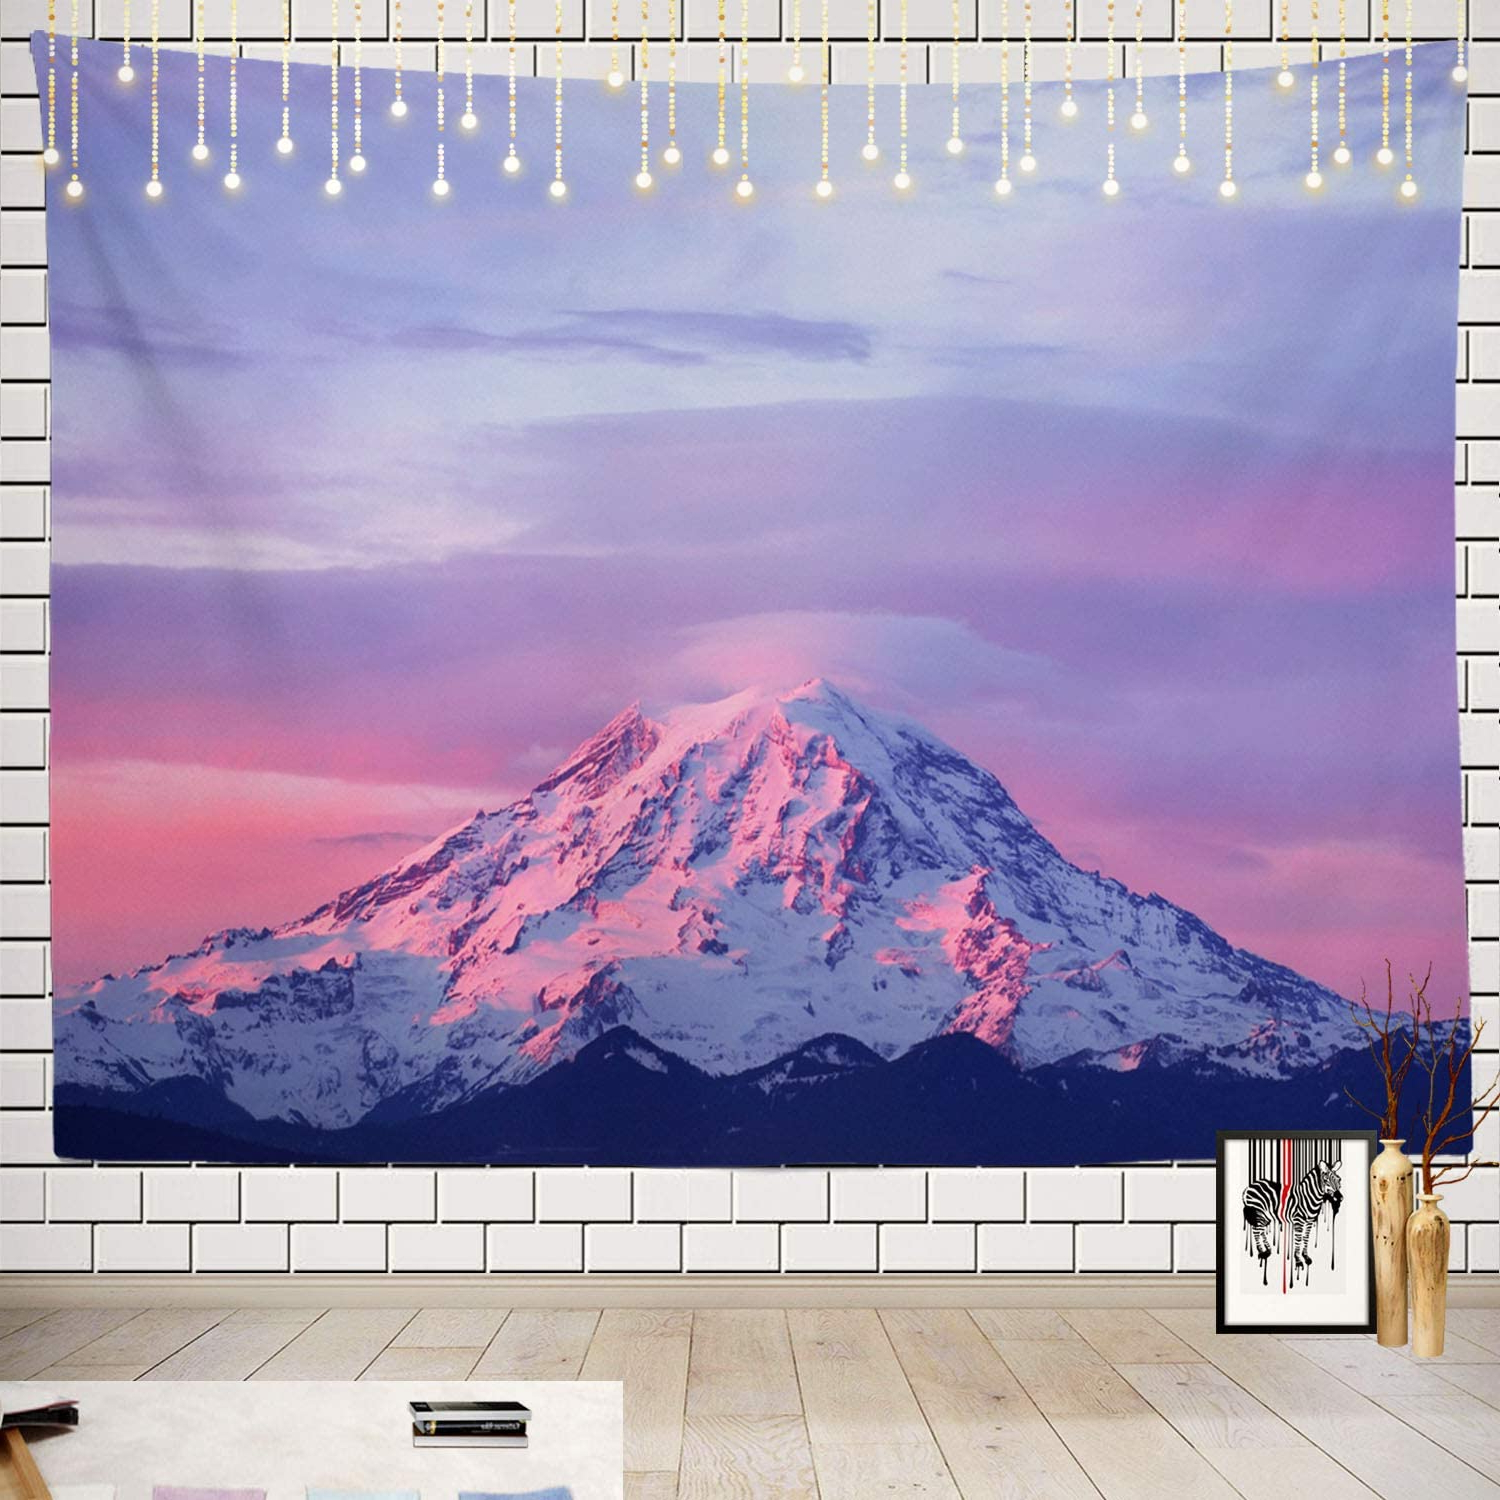 2019 Batmerry Pink Tapestry, Mount Rainier National Park At Sunset Picnic Mat Beach Towel Wall Art Decoration For Bedroom Living Room Dorm, 51.2 X (View 17 of 20)